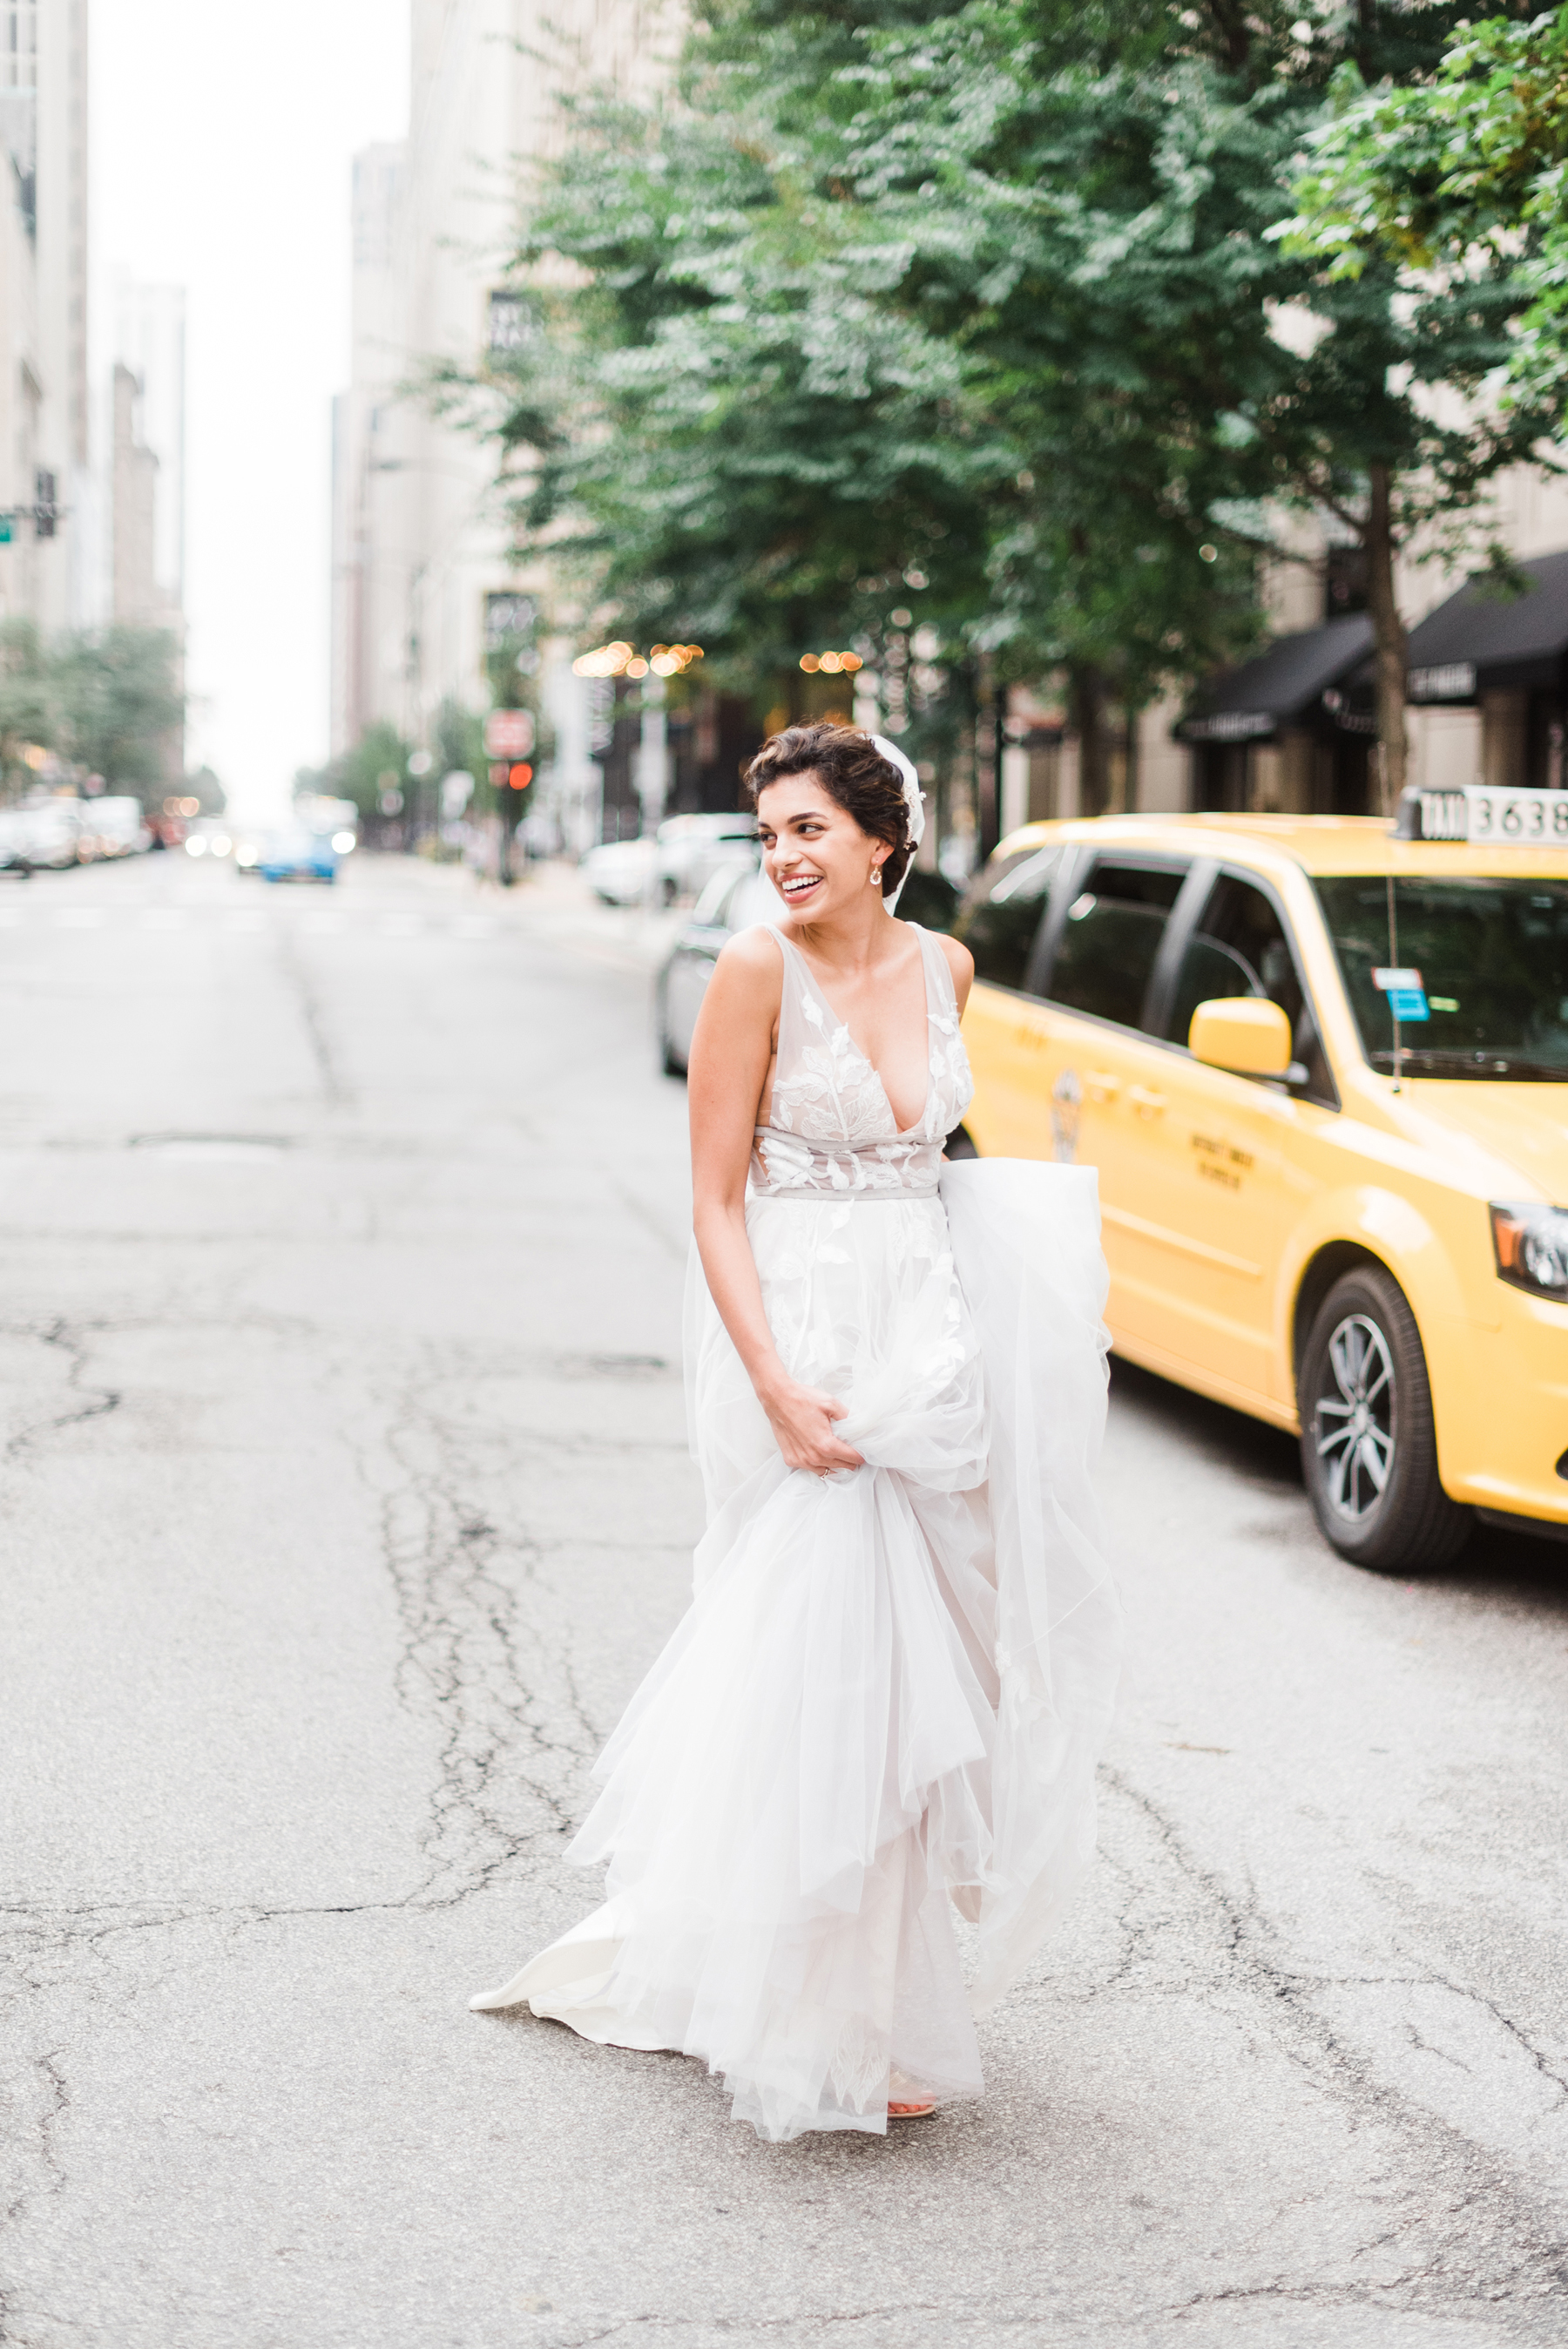 BHLDN Lakeshore in Love Danielle Heinson Photography (47)